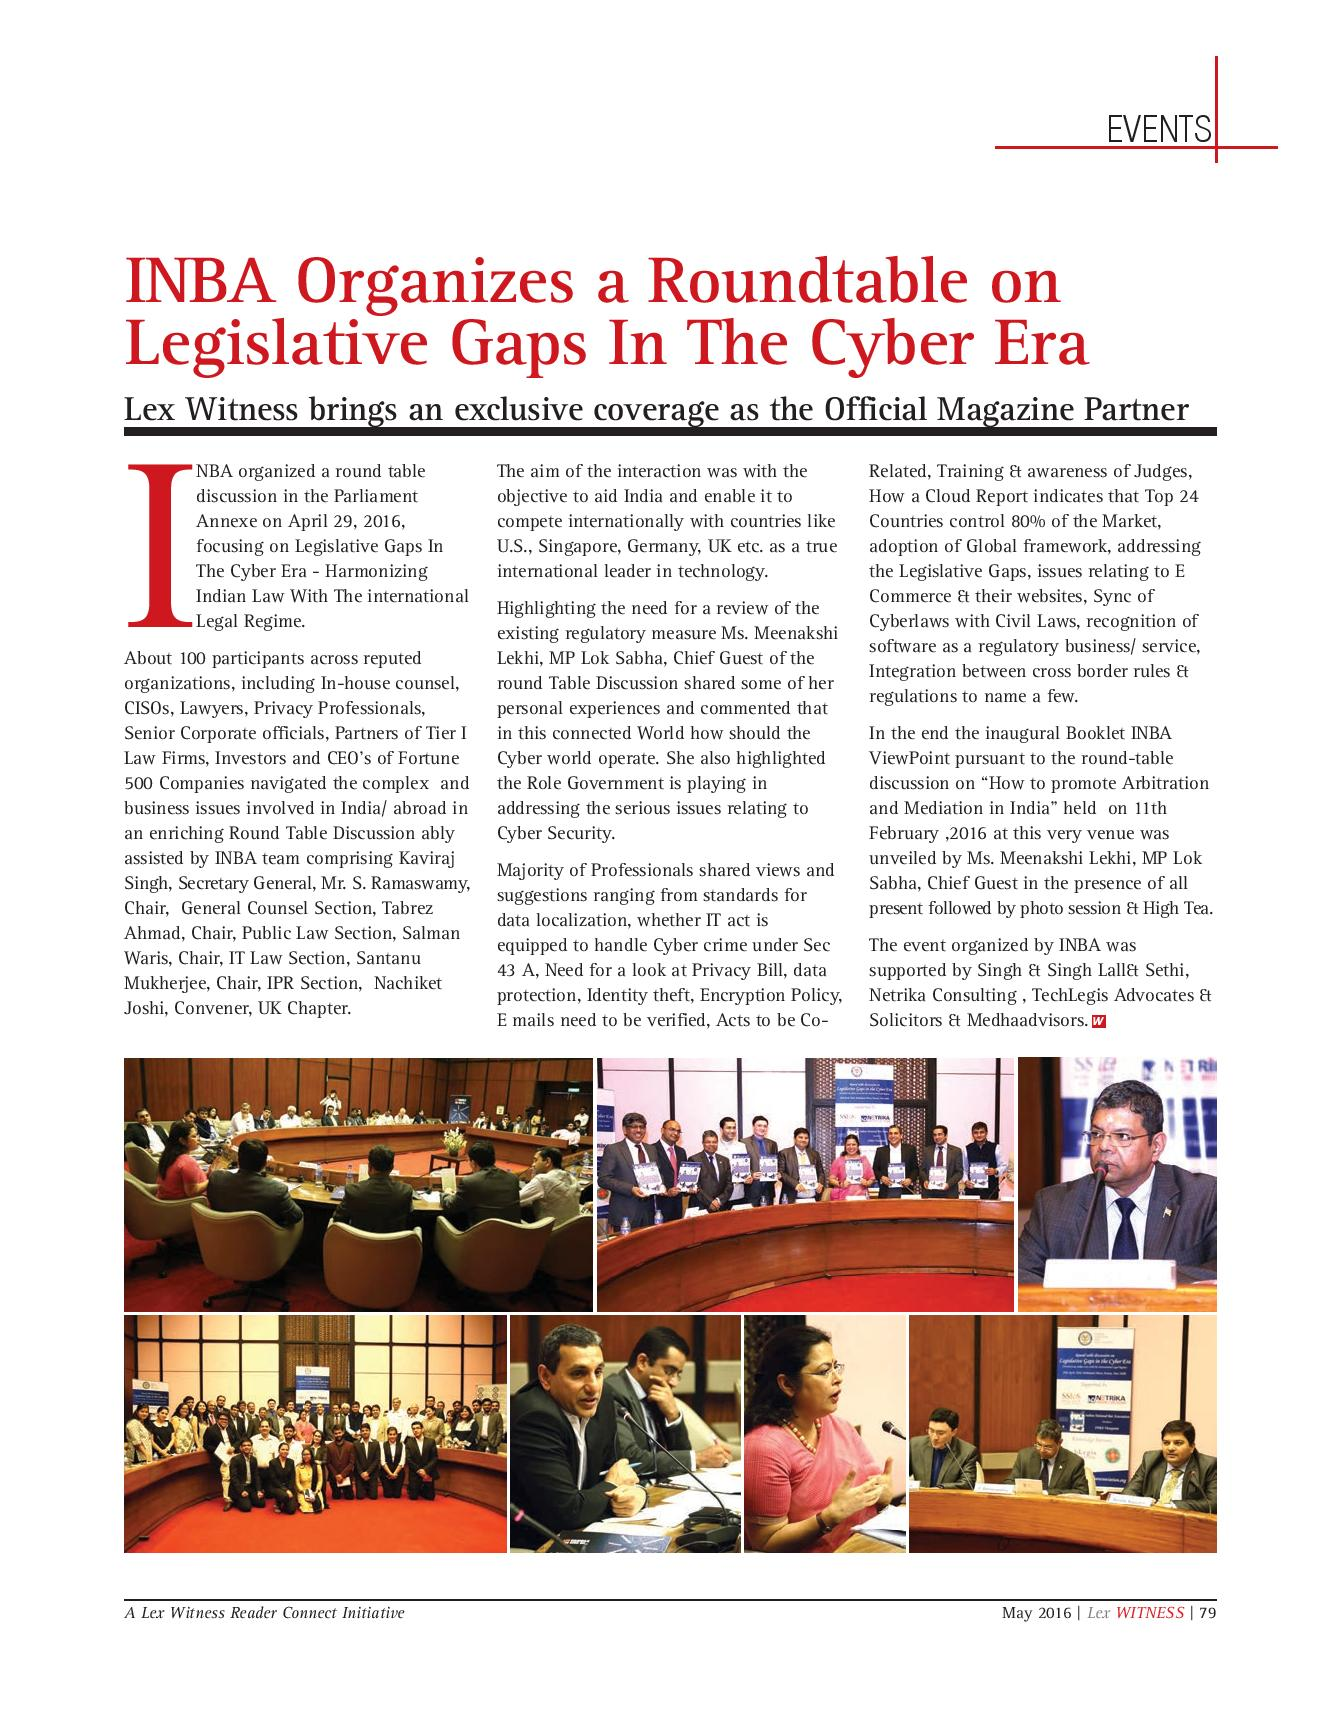 INBA Round table Discussion